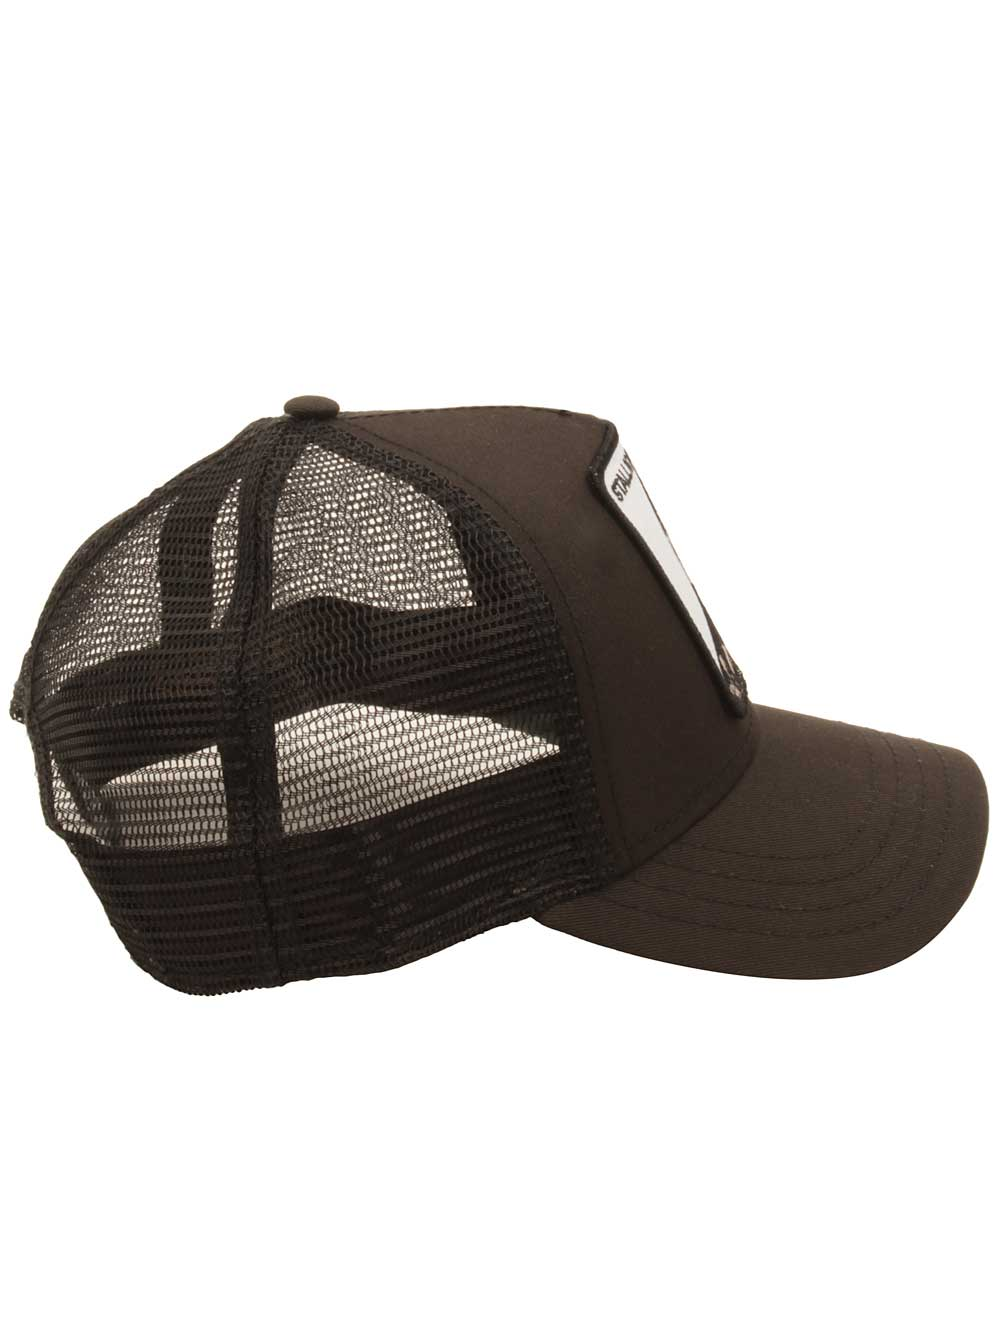 Goorin Bros. - Goorin Bros. Mens Stallion Hat in Black - Walmart.com d1286530b18